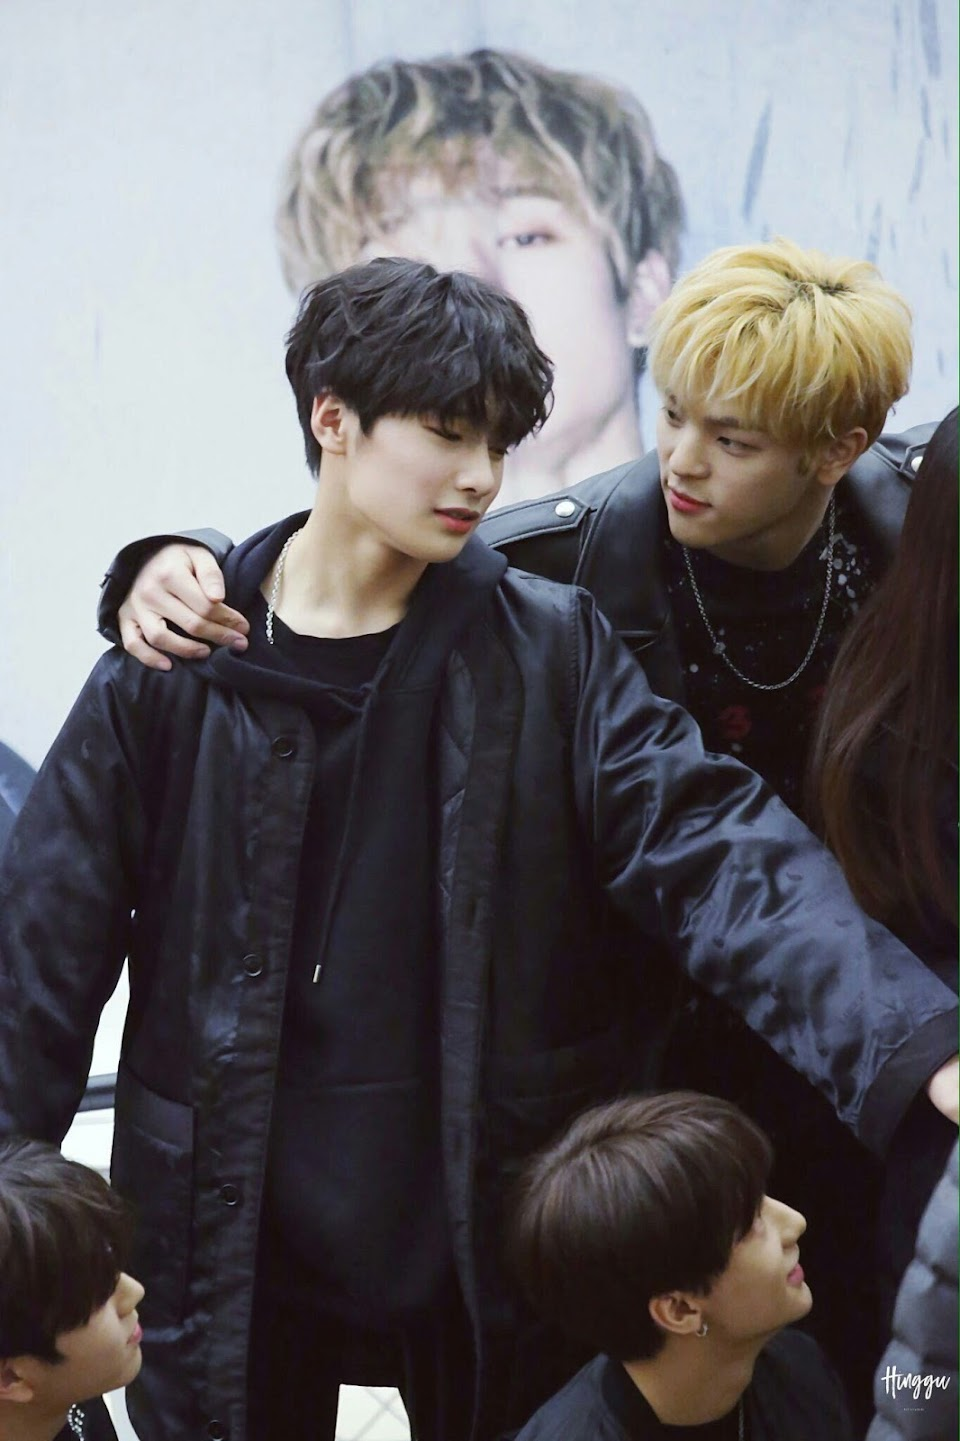 Stray Kids I.N and Woojin